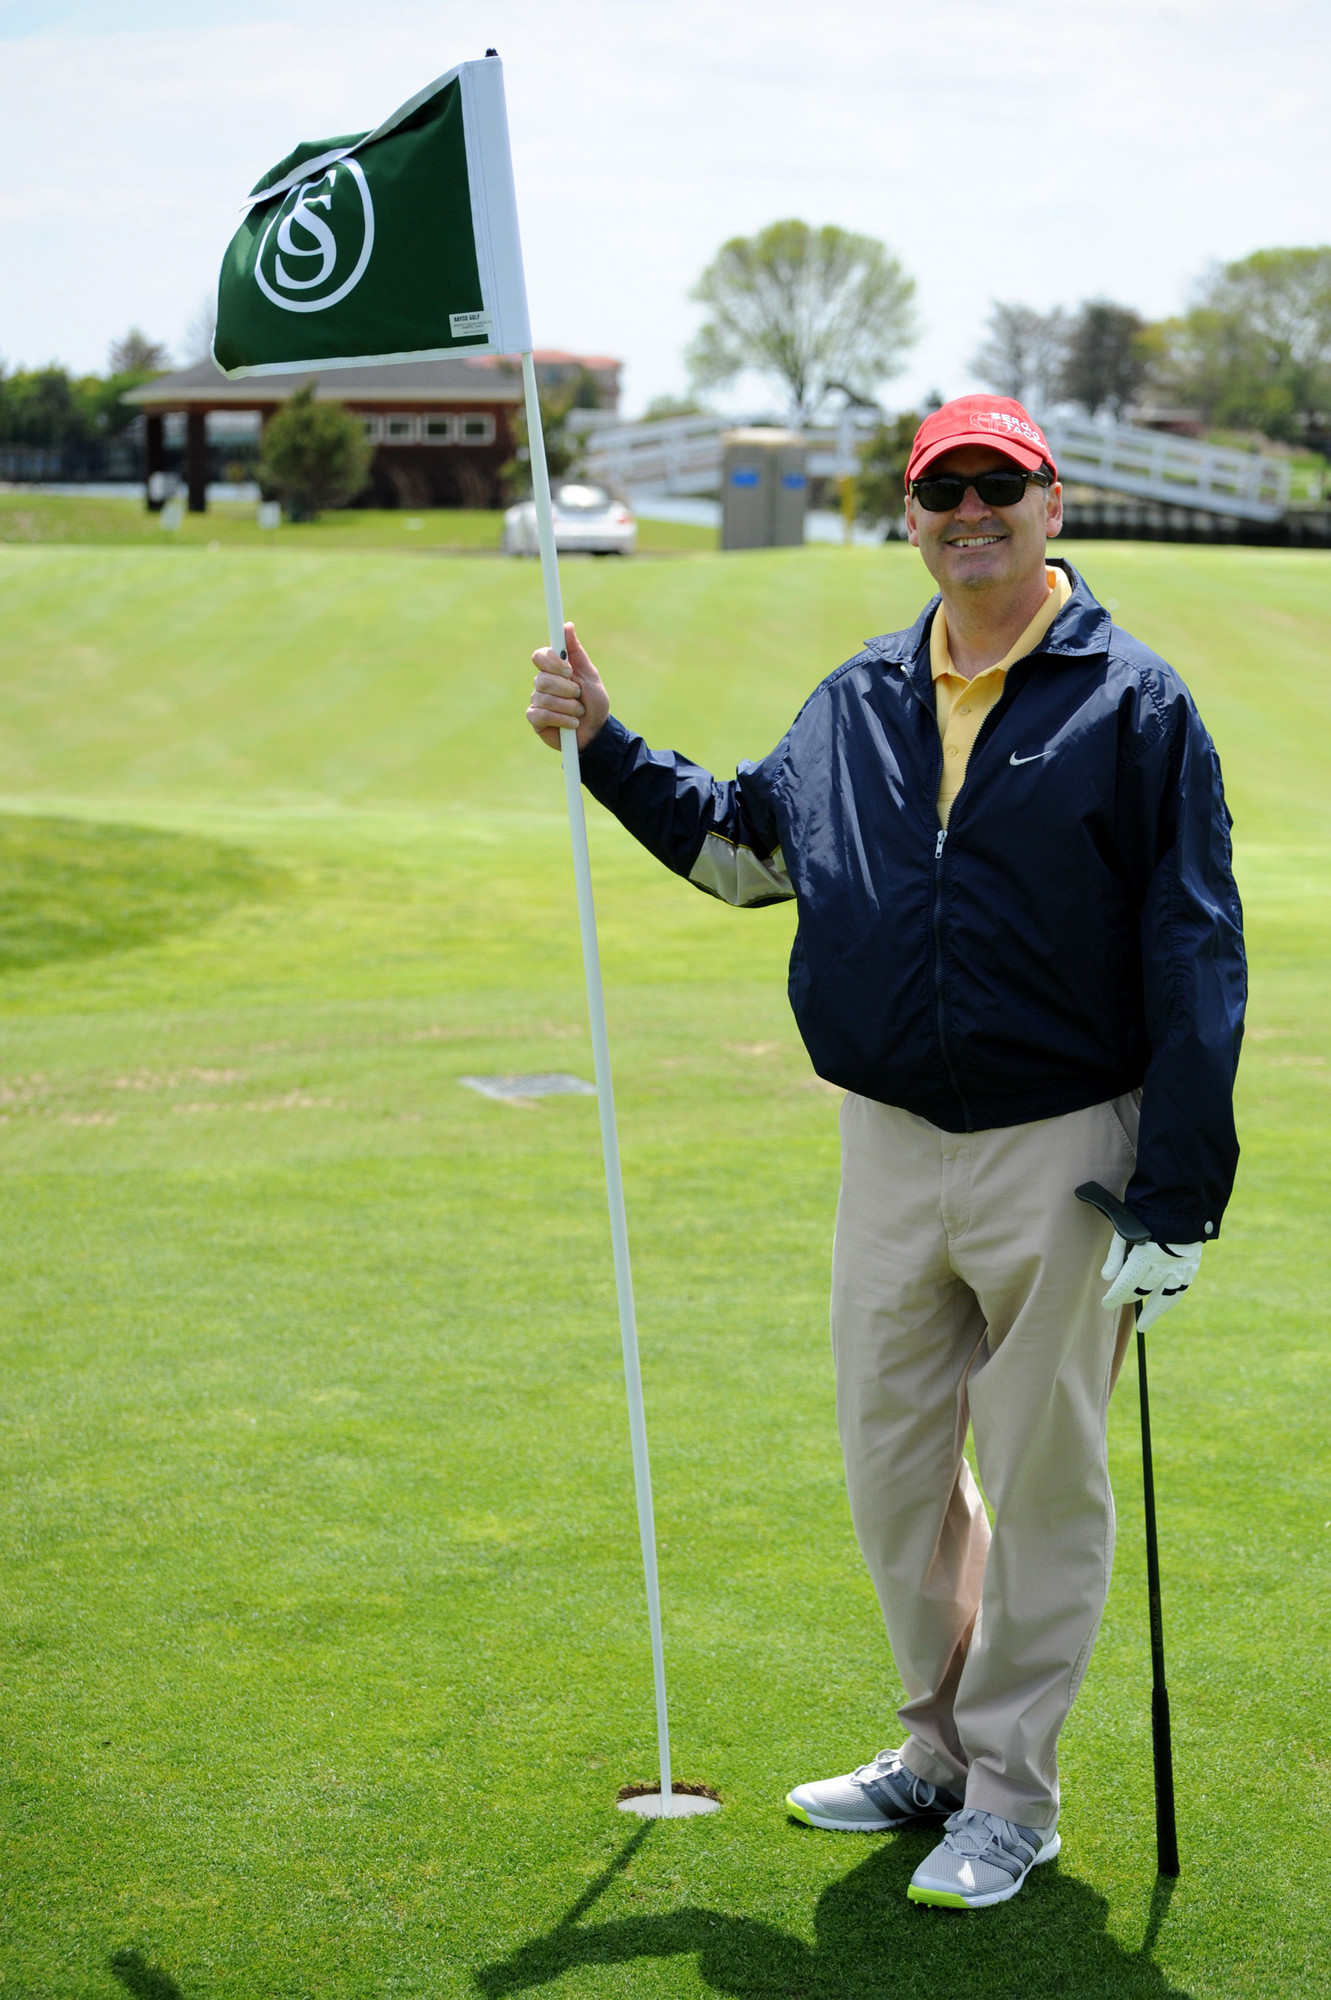 Bill Gaylor Jr. tended to the flagstick.